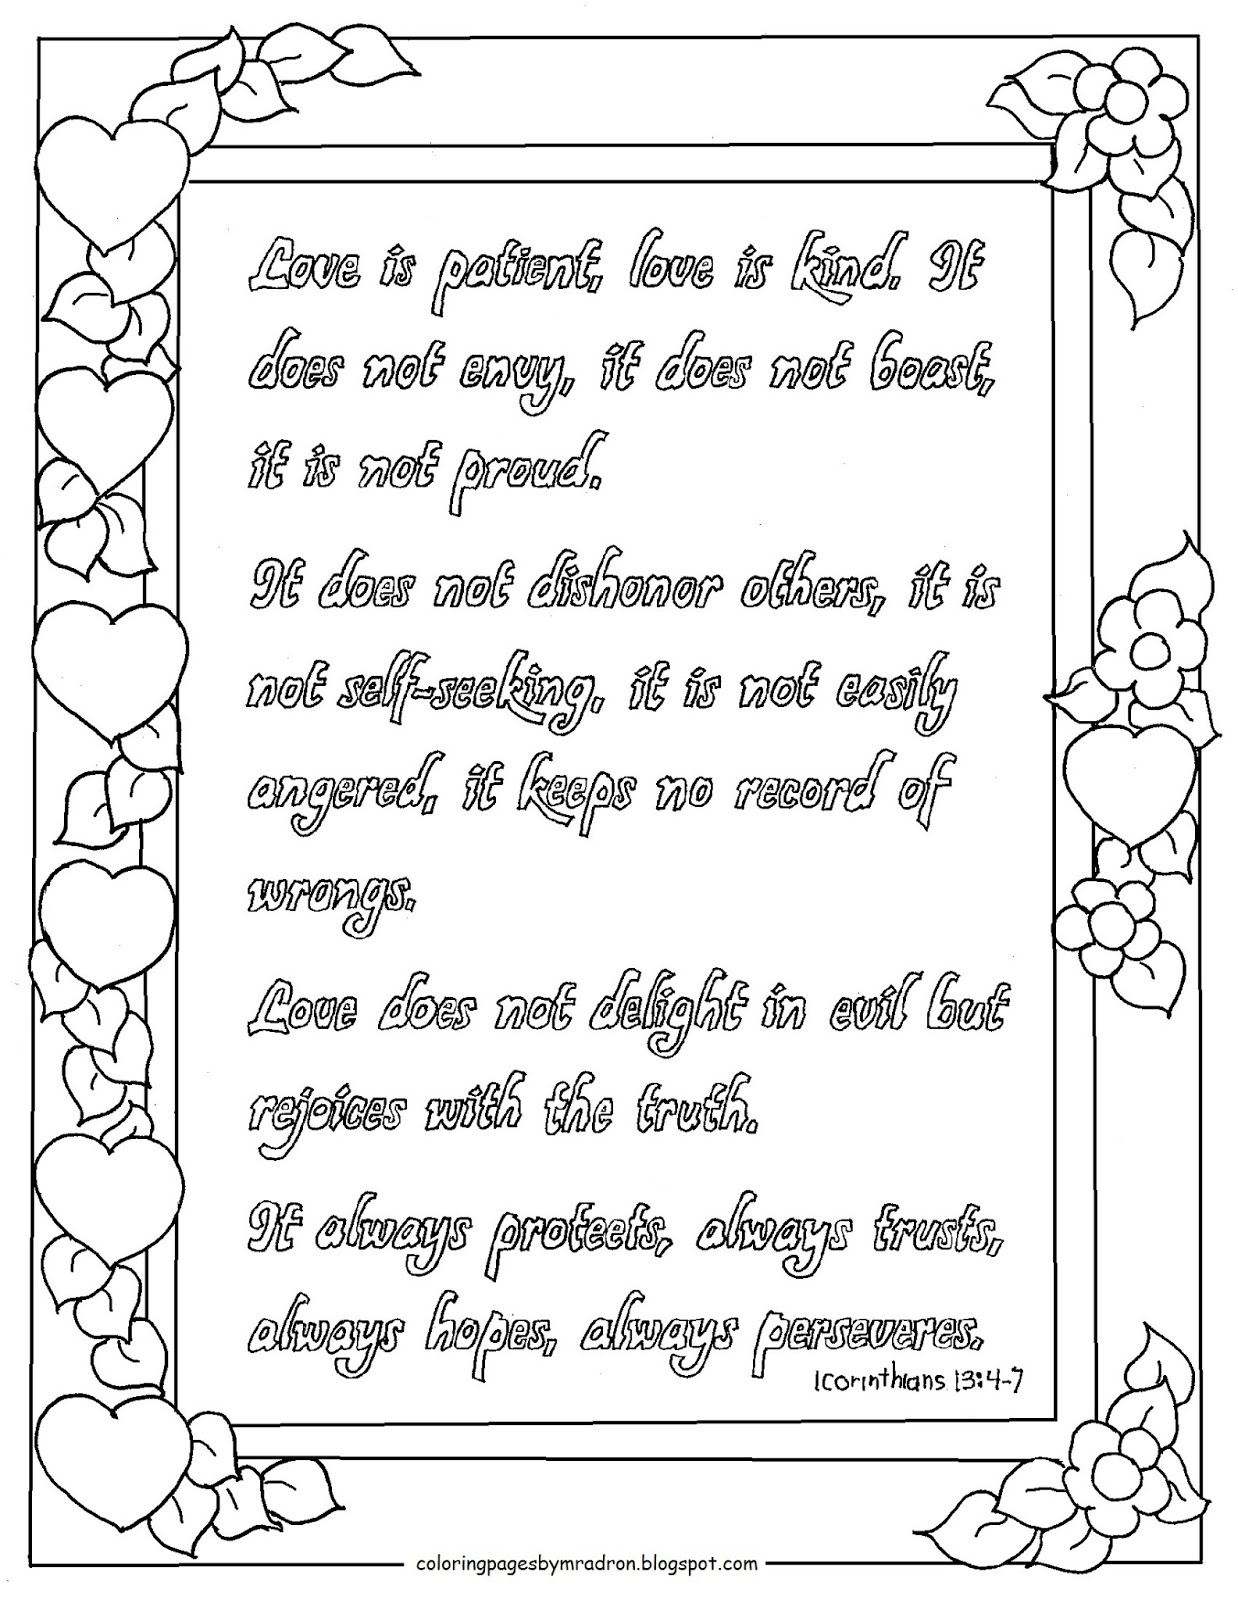 It's just a photo of Priceless 1 Corinthians 13 Coloring Page